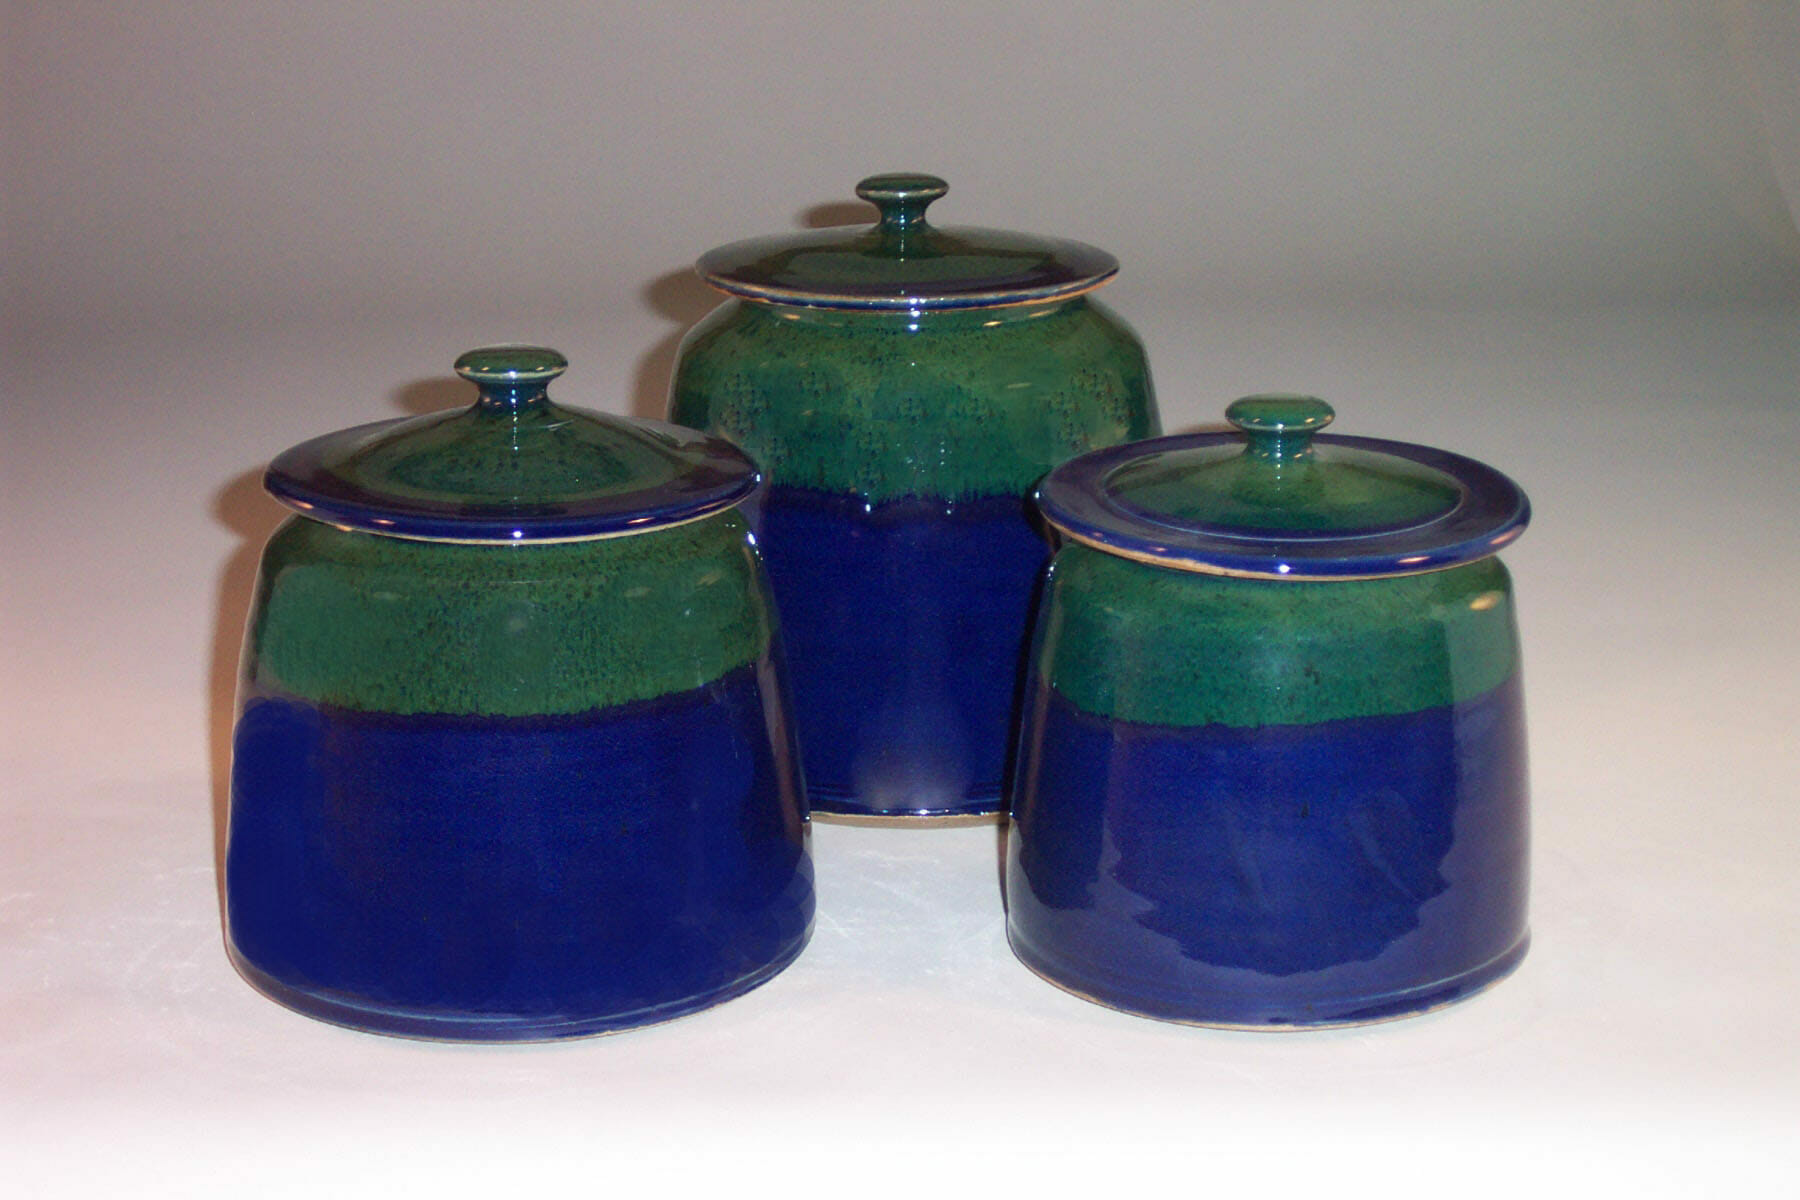 Cannister 3-pc Set with Lids Smooth Design Dark Blue and Green Glaze